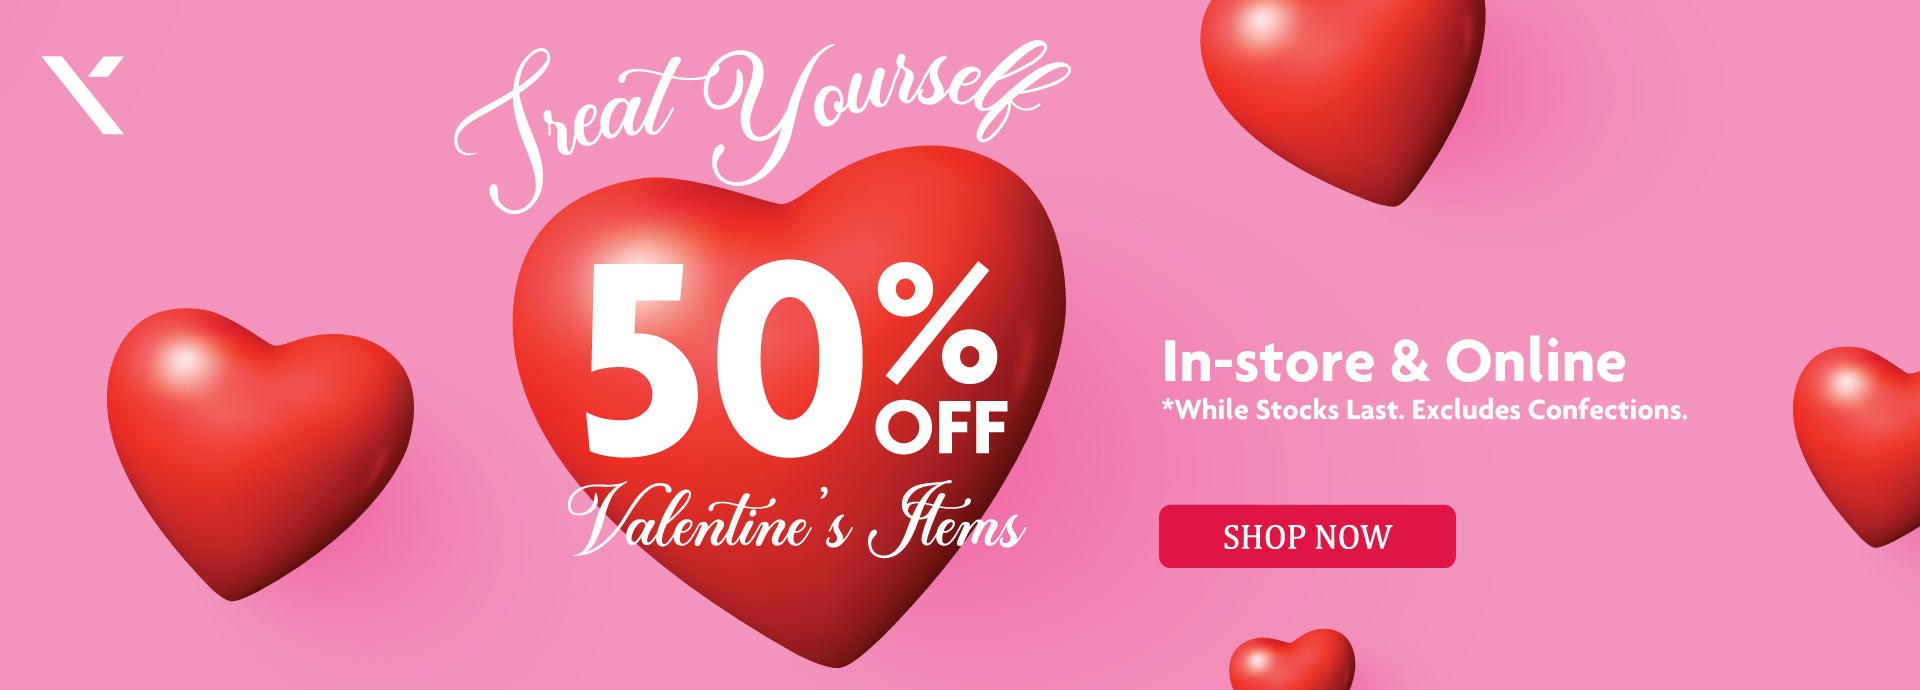 Treat Yourself with 50% OFF Valentine's Items